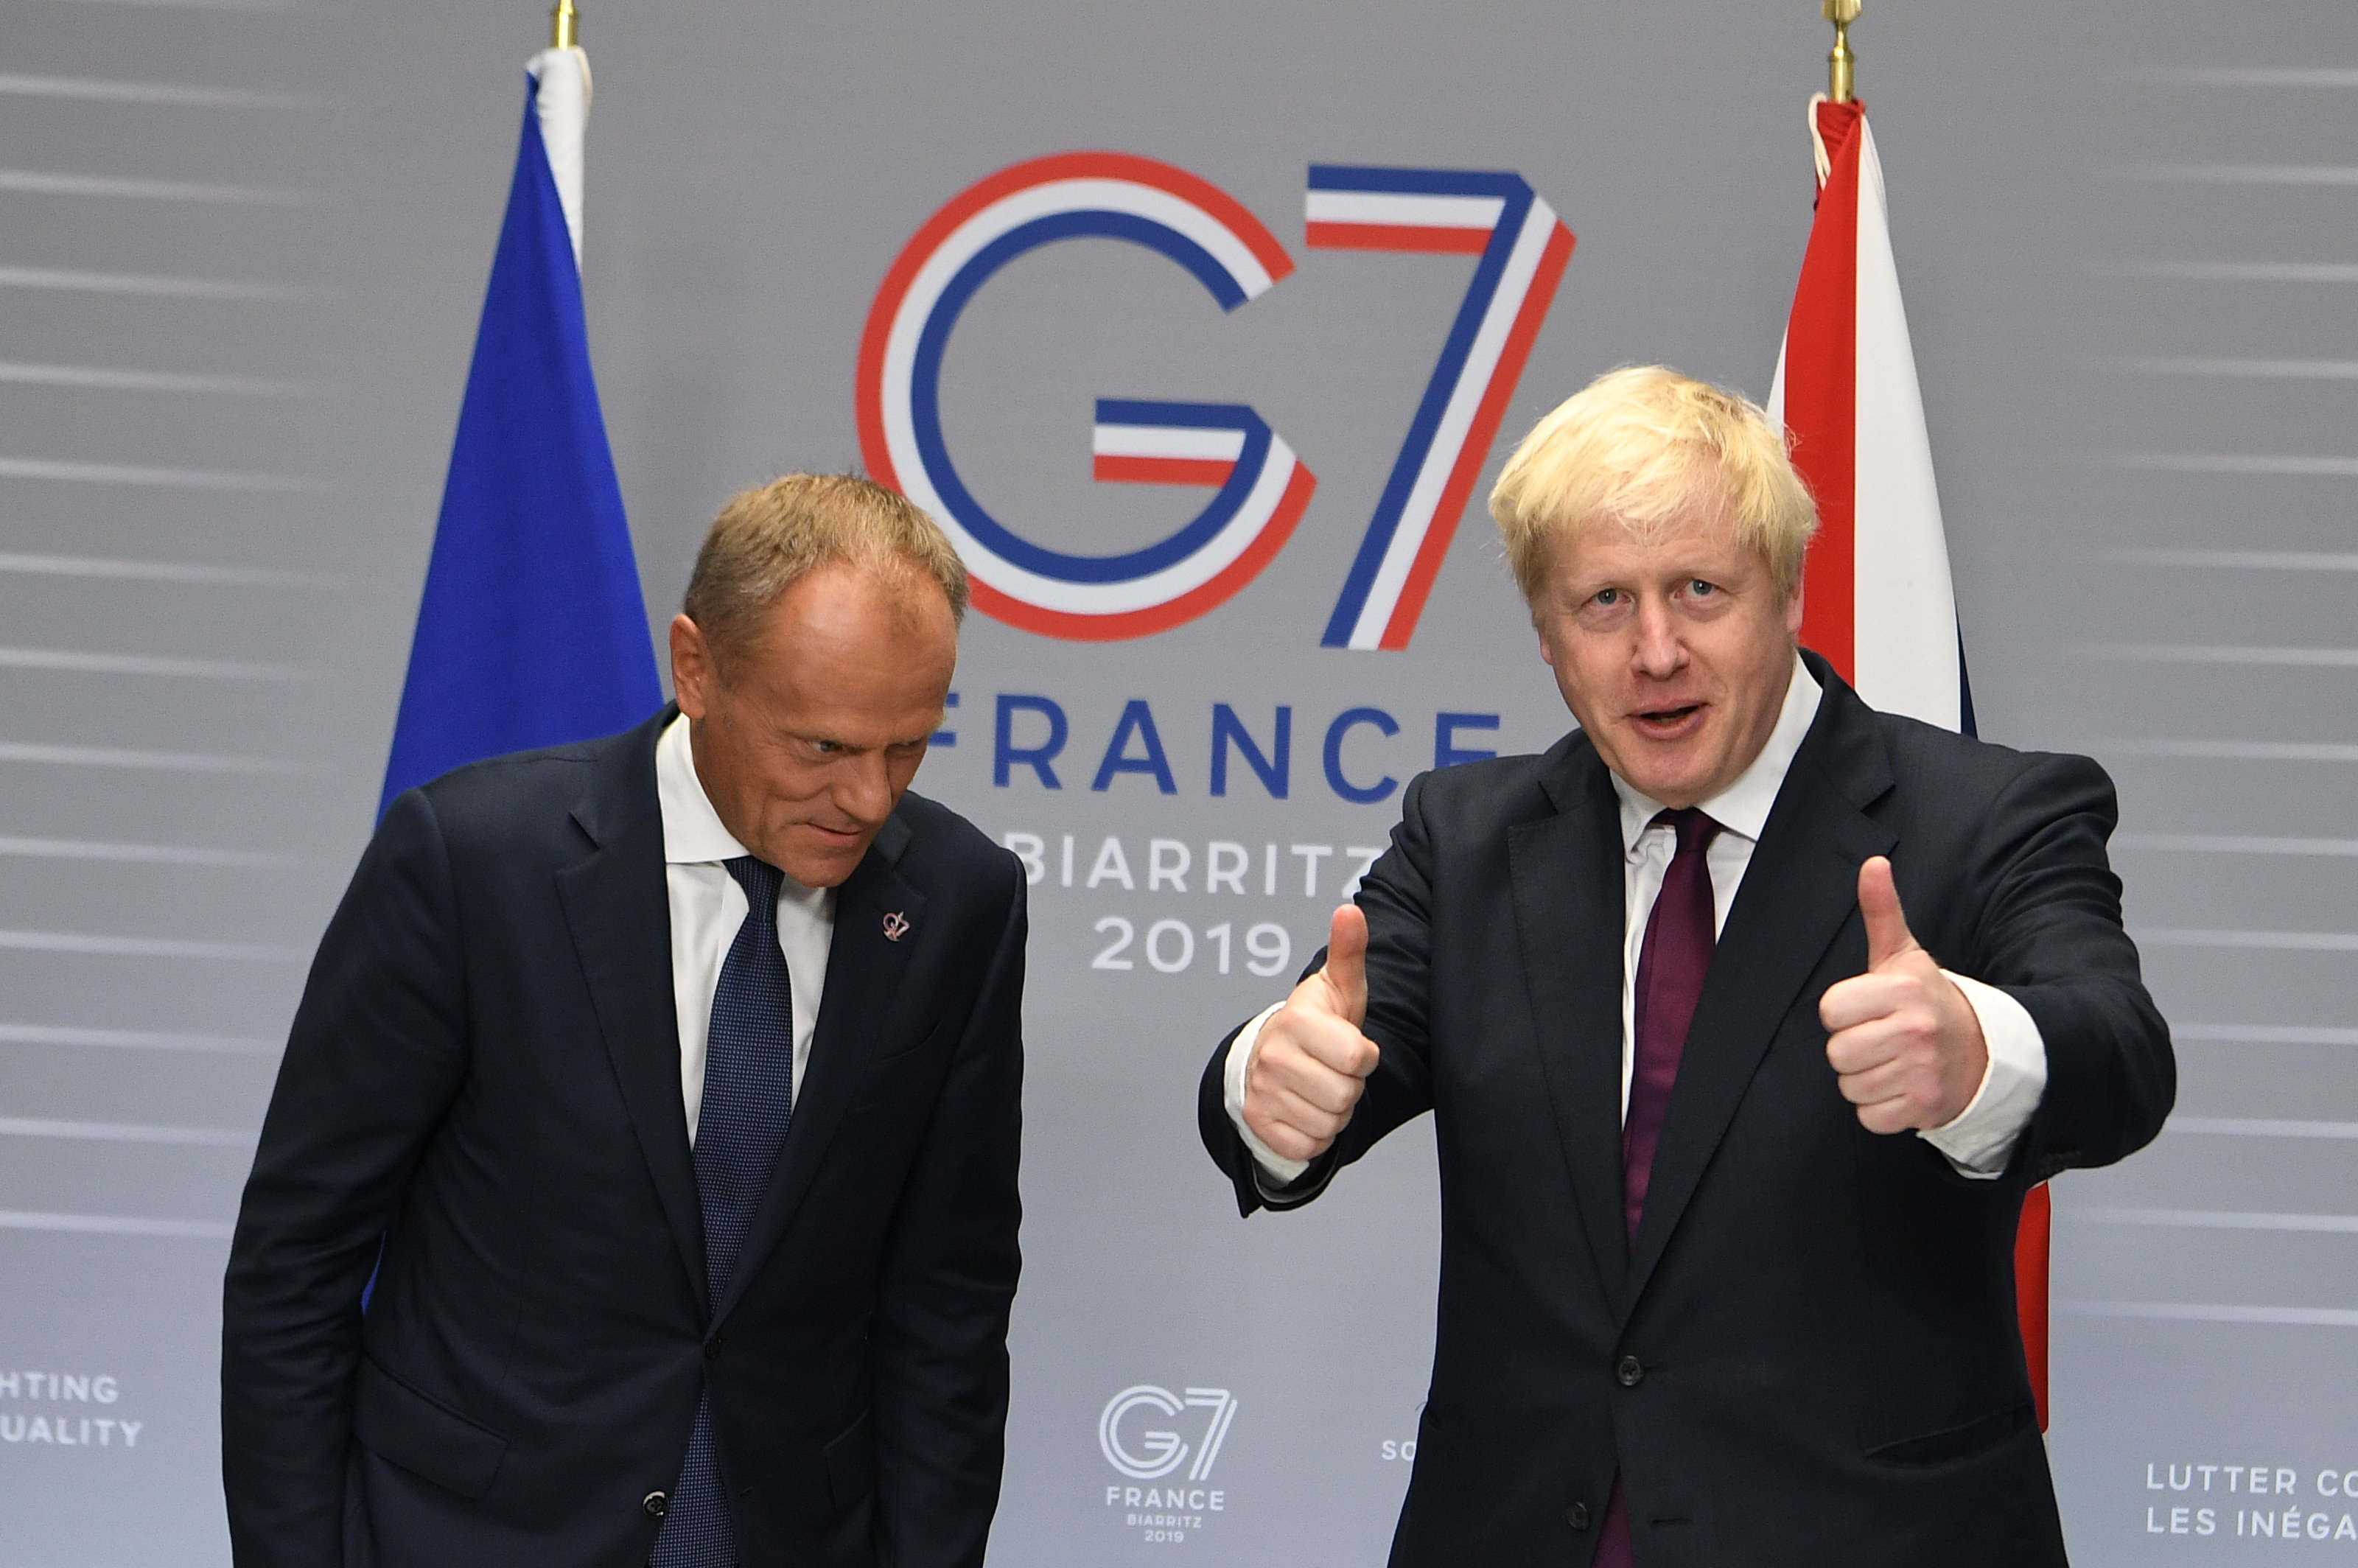 BIARRITZ, FRANCE - AUGUST 25: Britain's Prime Minister, Boris Johnson meets with President of the European Council, Donald Tusk at the G7 summit on August 25, 2019 in Biarritz, France. The French southwestern seaside resort of Biarritz is hosting the 45th G7 summit from August 24 to 26. High on the agenda will be the climate emergency, the US-China trade war, Britain's departure from the EU, and emergency talks on the Amazon wildfire crisis. (Photo by Andrew Parsons - Pool/Getty Images)